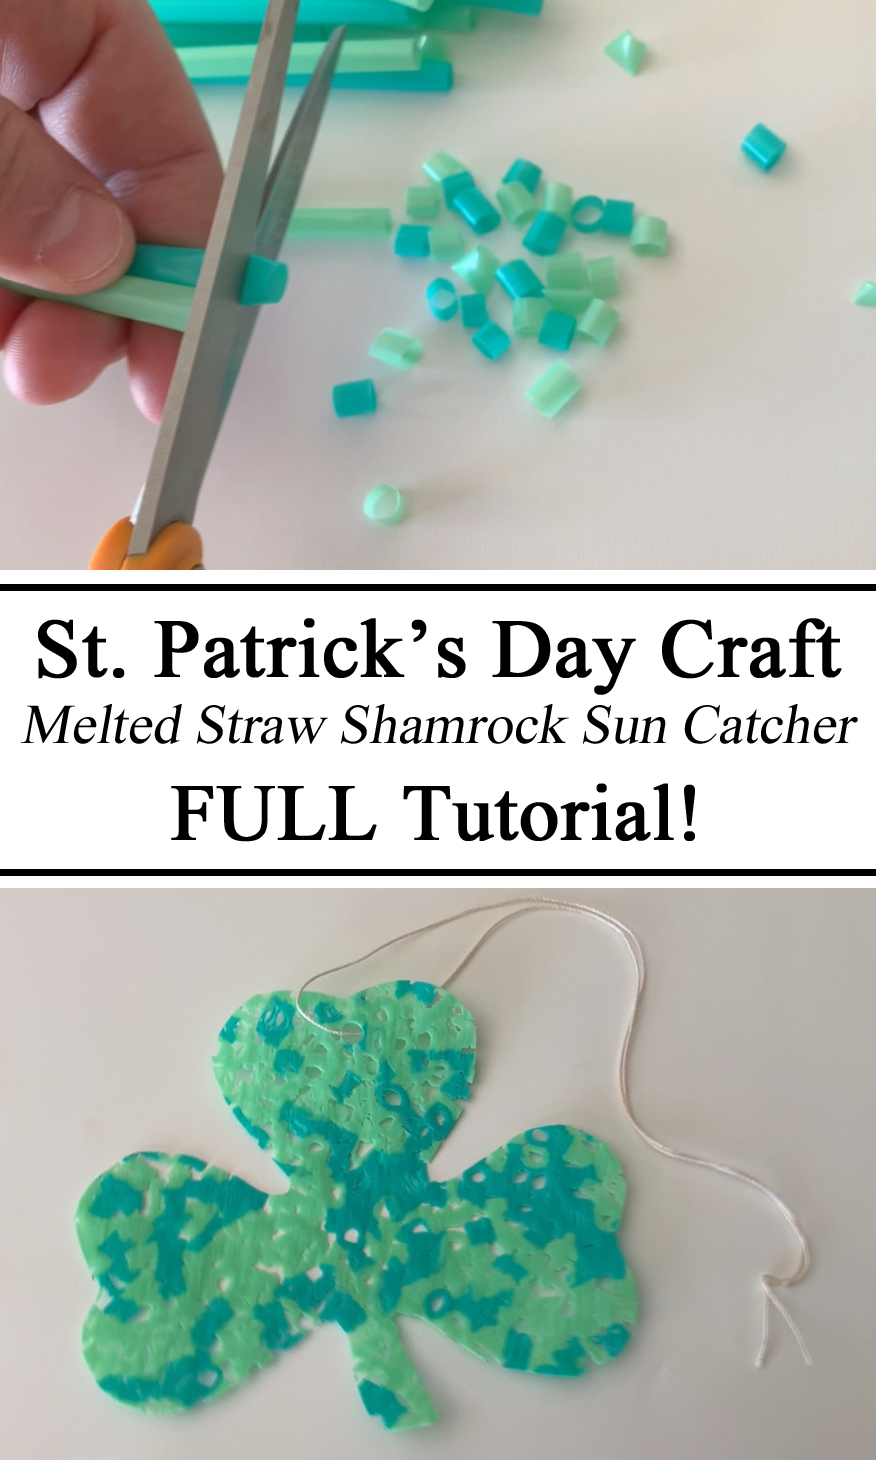 Homeschool, Homeschooling, Upcycle, Straws, Melted Plastic, DIY, Preschool, PreK, Kindergarten, Montessori, Arts and Crafts, Crafts for Kids, Science Experiments, St. Patrick's Day, Saint Paddy's Patty's Day, Crafts Activity for Kids, Sun Catcher, Green, Lucky Four Leaf Clover Shamrock, Early Childhood Education, STEAM, STEM Educational, Learning, Hands on Teaching, Resources, Inspiration, Ideas